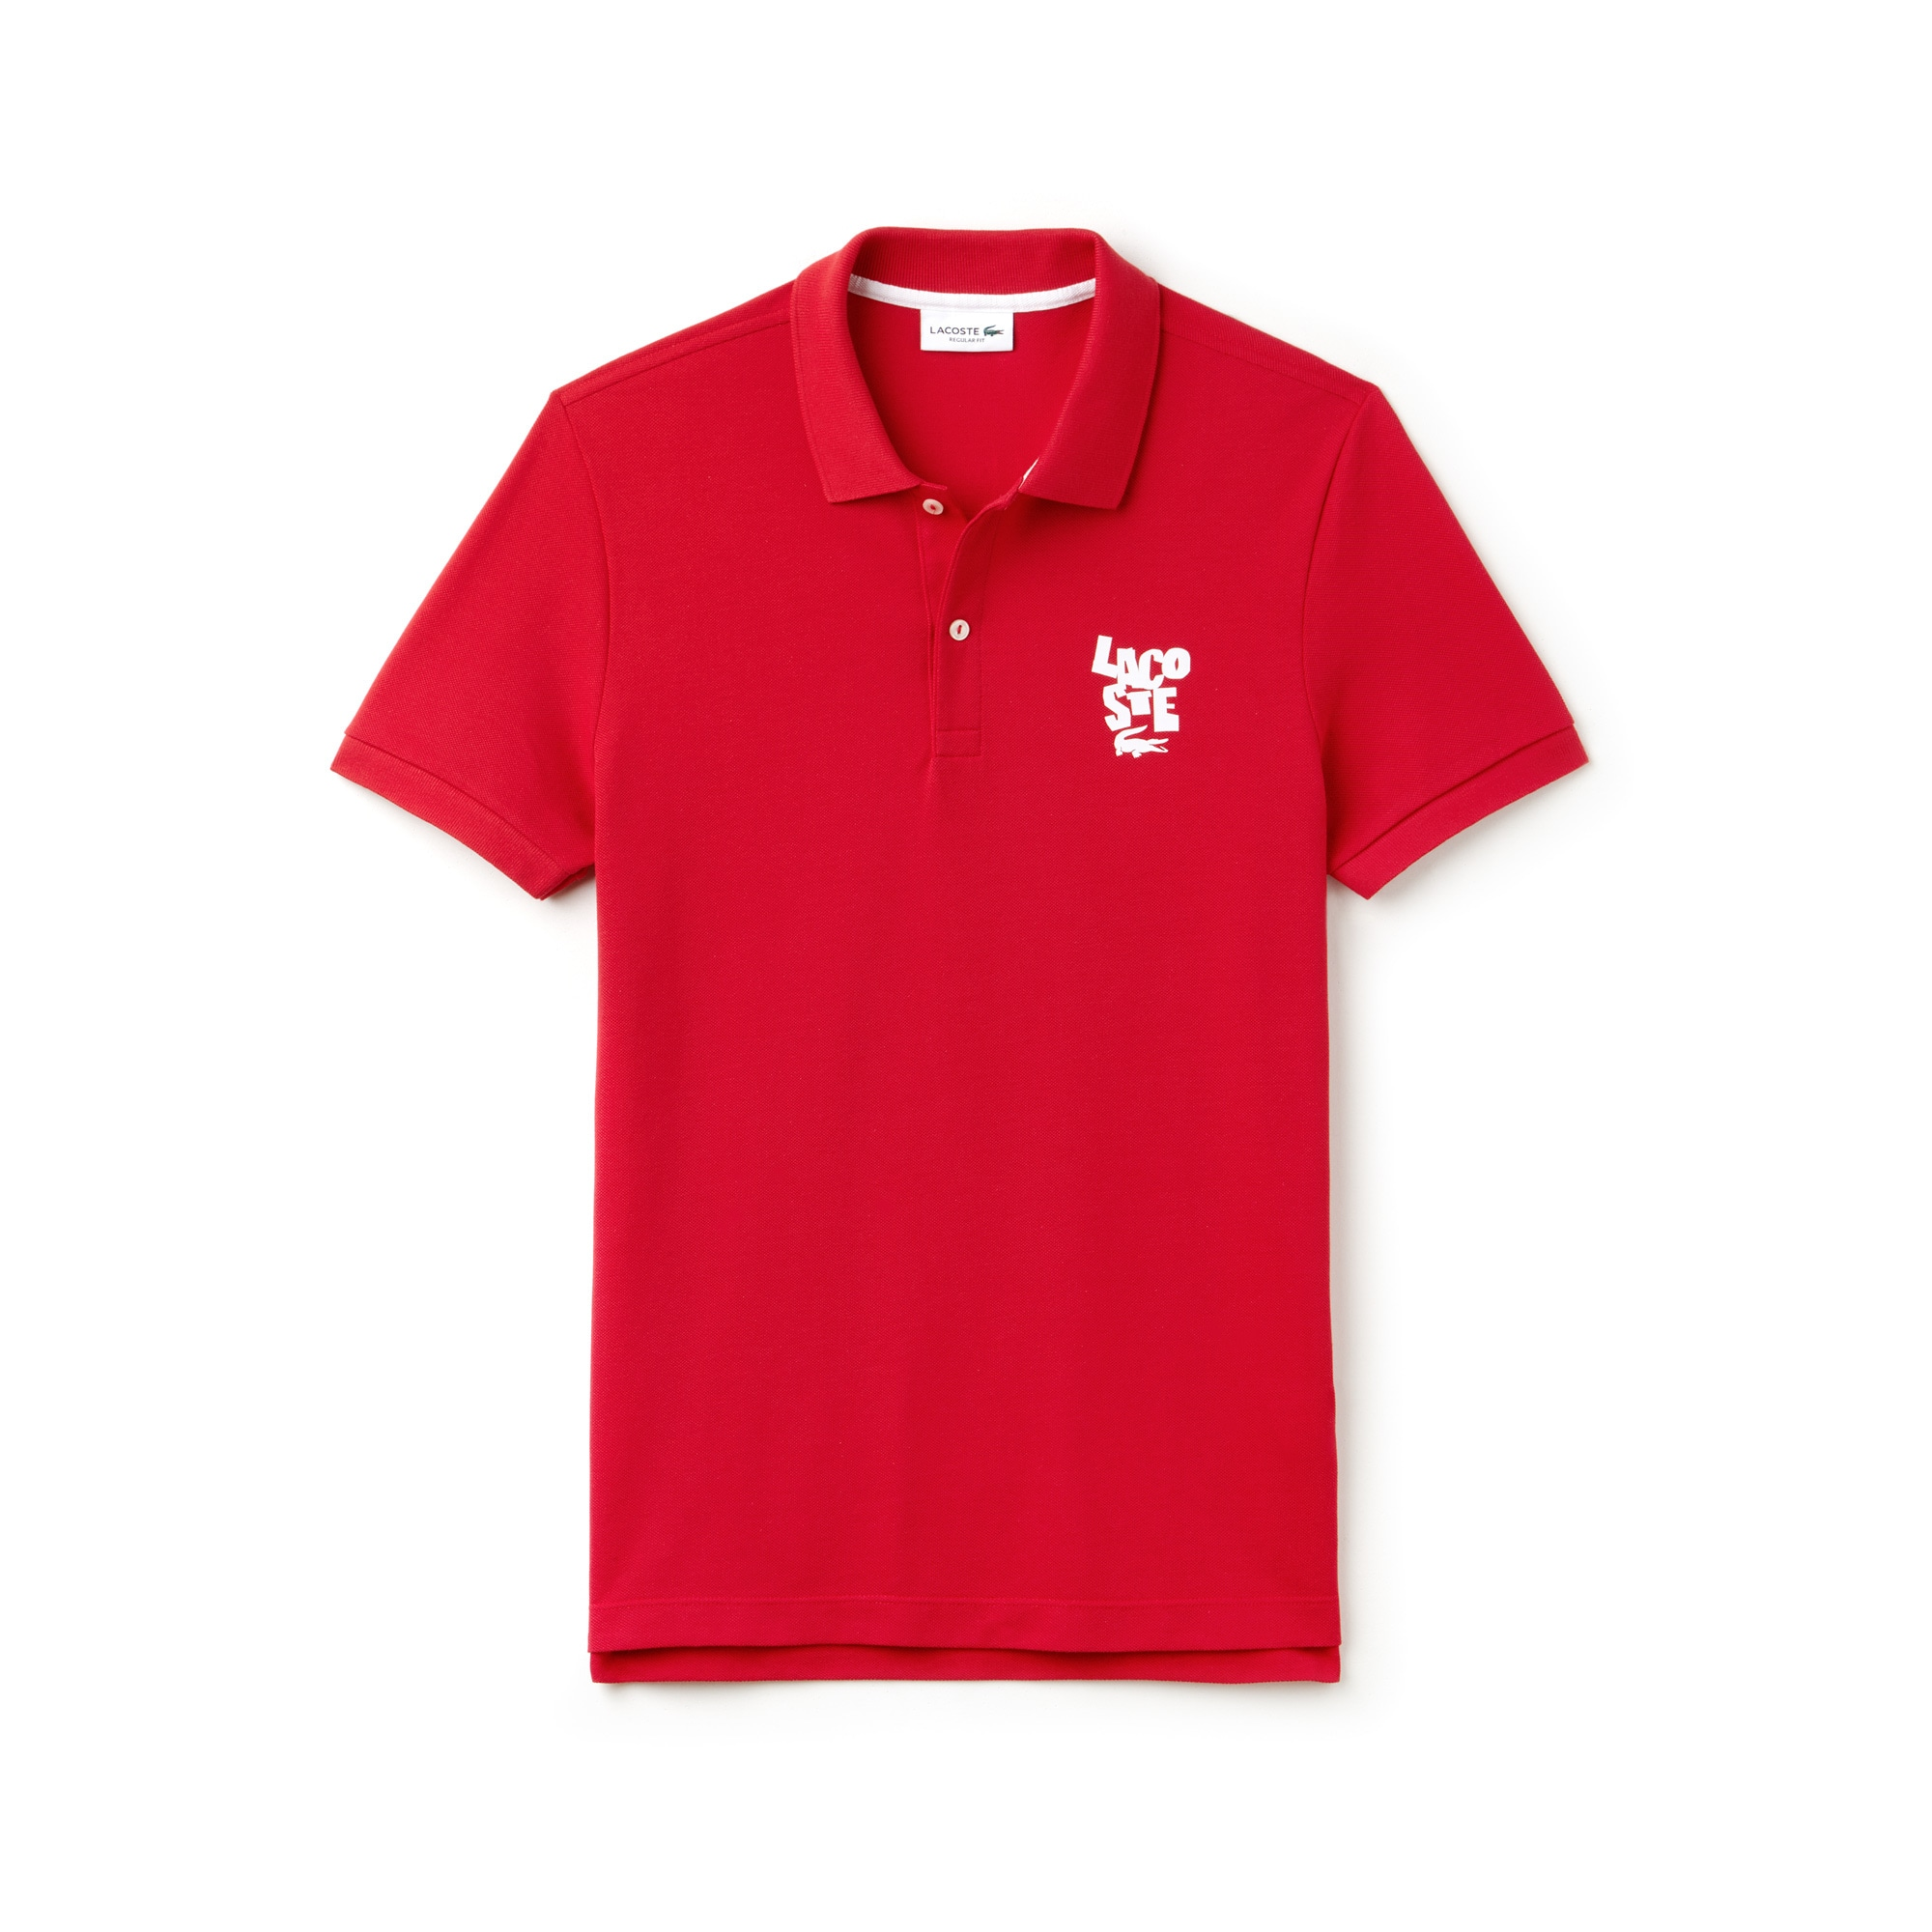 Men's Regular Fit Lacoste Lettering Cotton Petit Piqué Polo Shirt